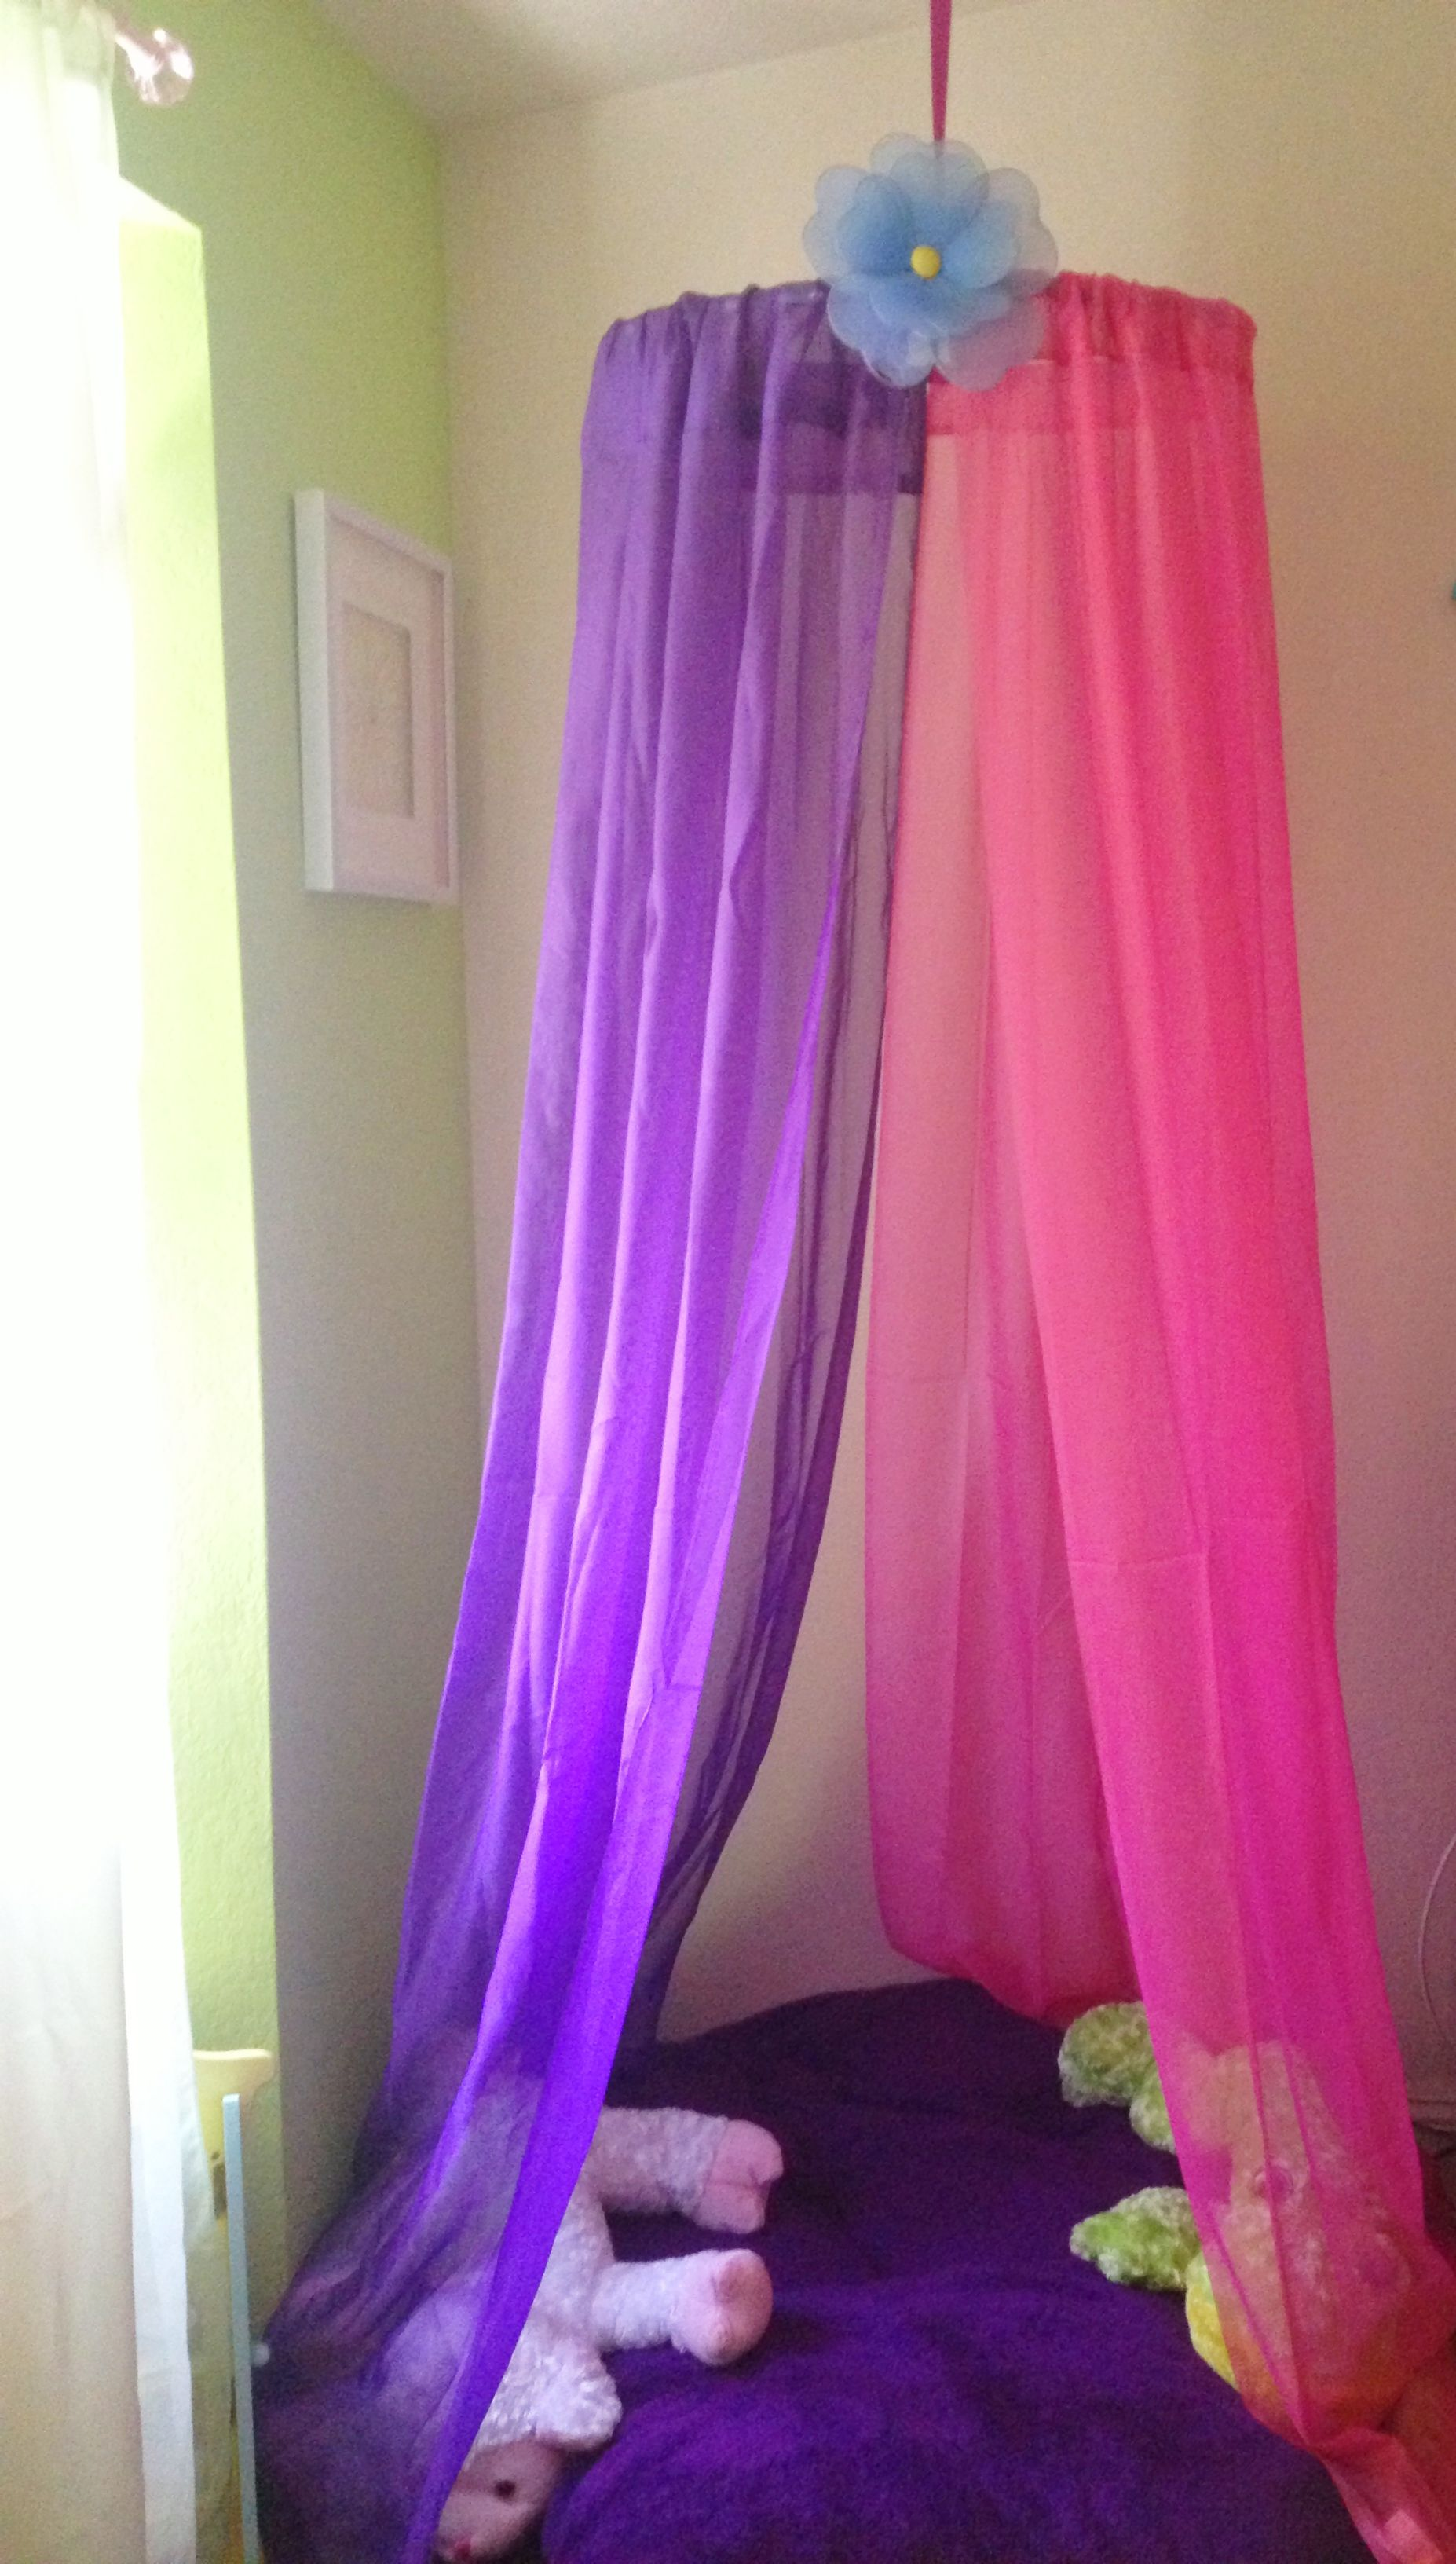 How to make a bed canopy for girls - Diy Canopy Project Made For My Girls Under 10 Using Hula Hoop